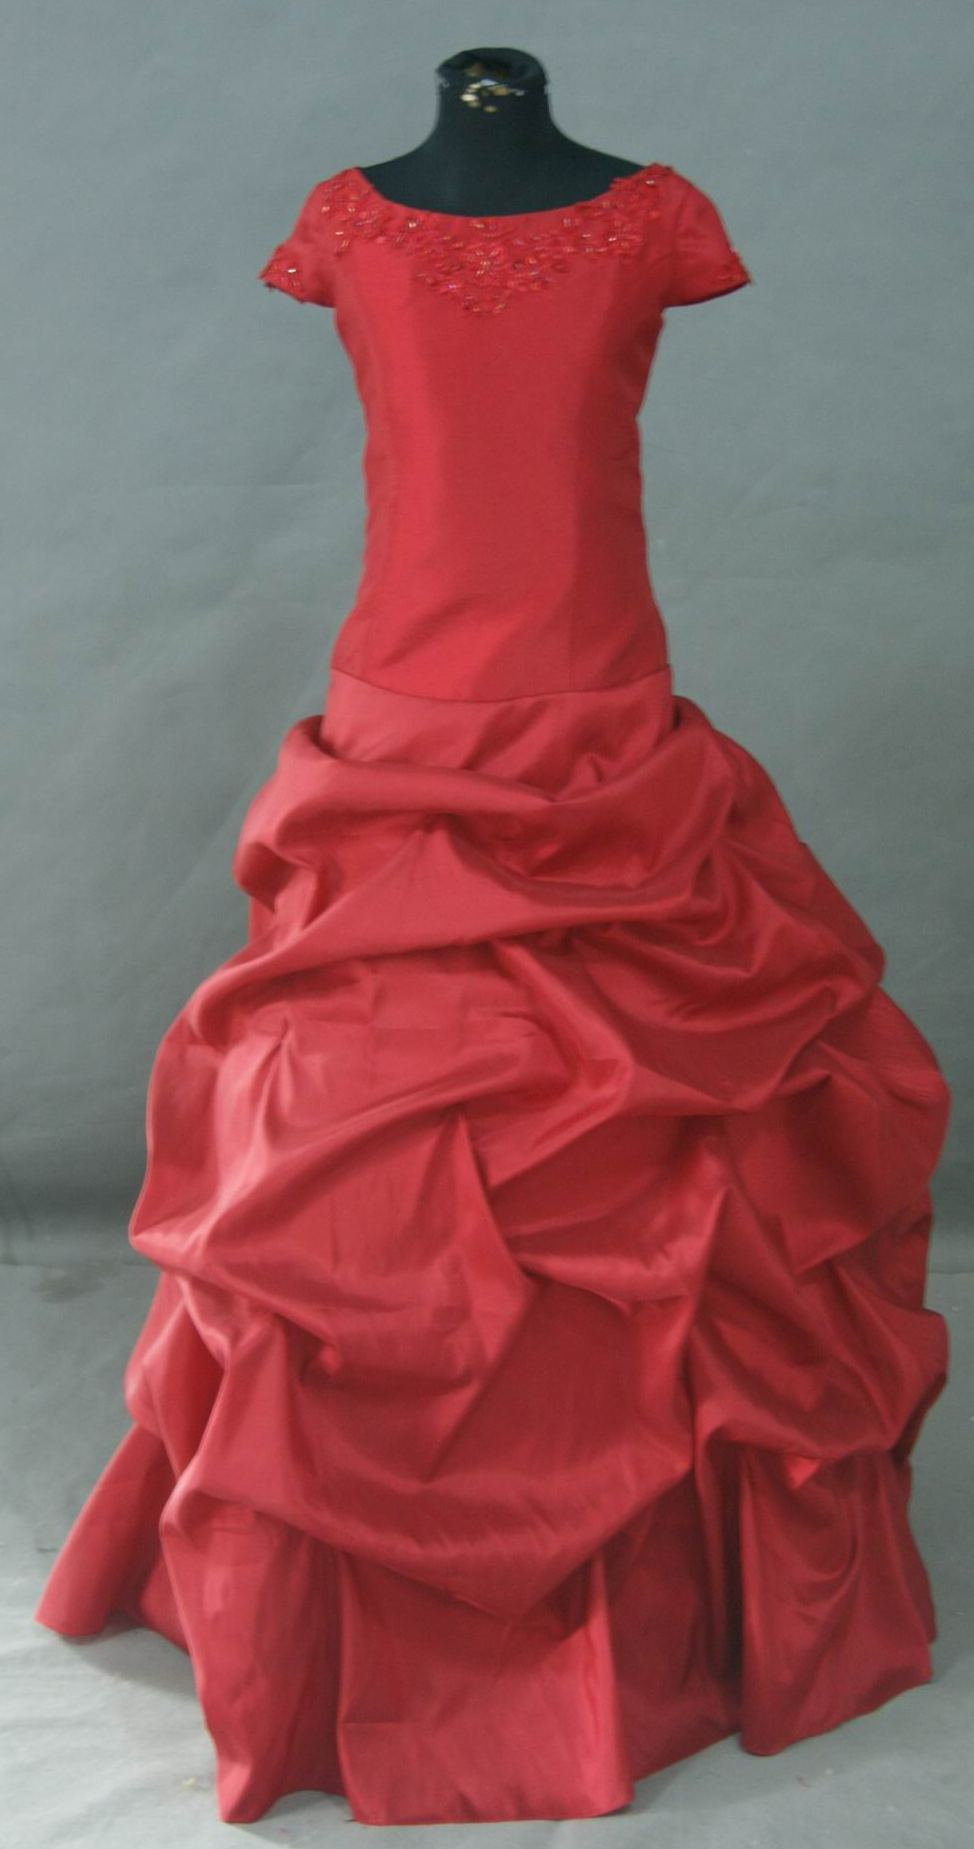 Childrens party dresses ball gown gathered skirt apple red childrens ball gown gathered skirt yellow bridesmaid dresses ombrellifo Gallery